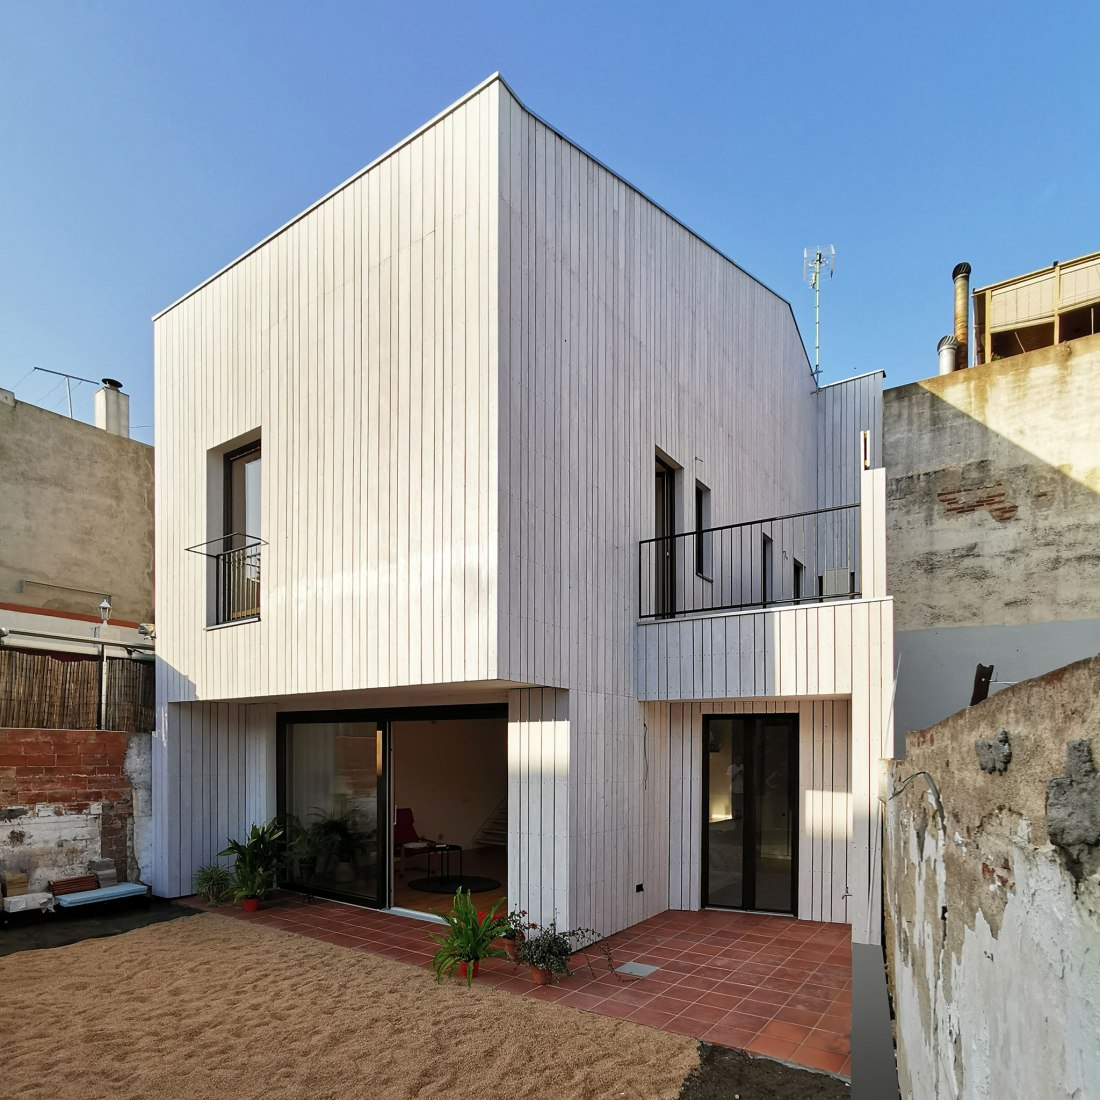 Argentona by COMA Arquitectura. Photograph by COMA Arquitectura